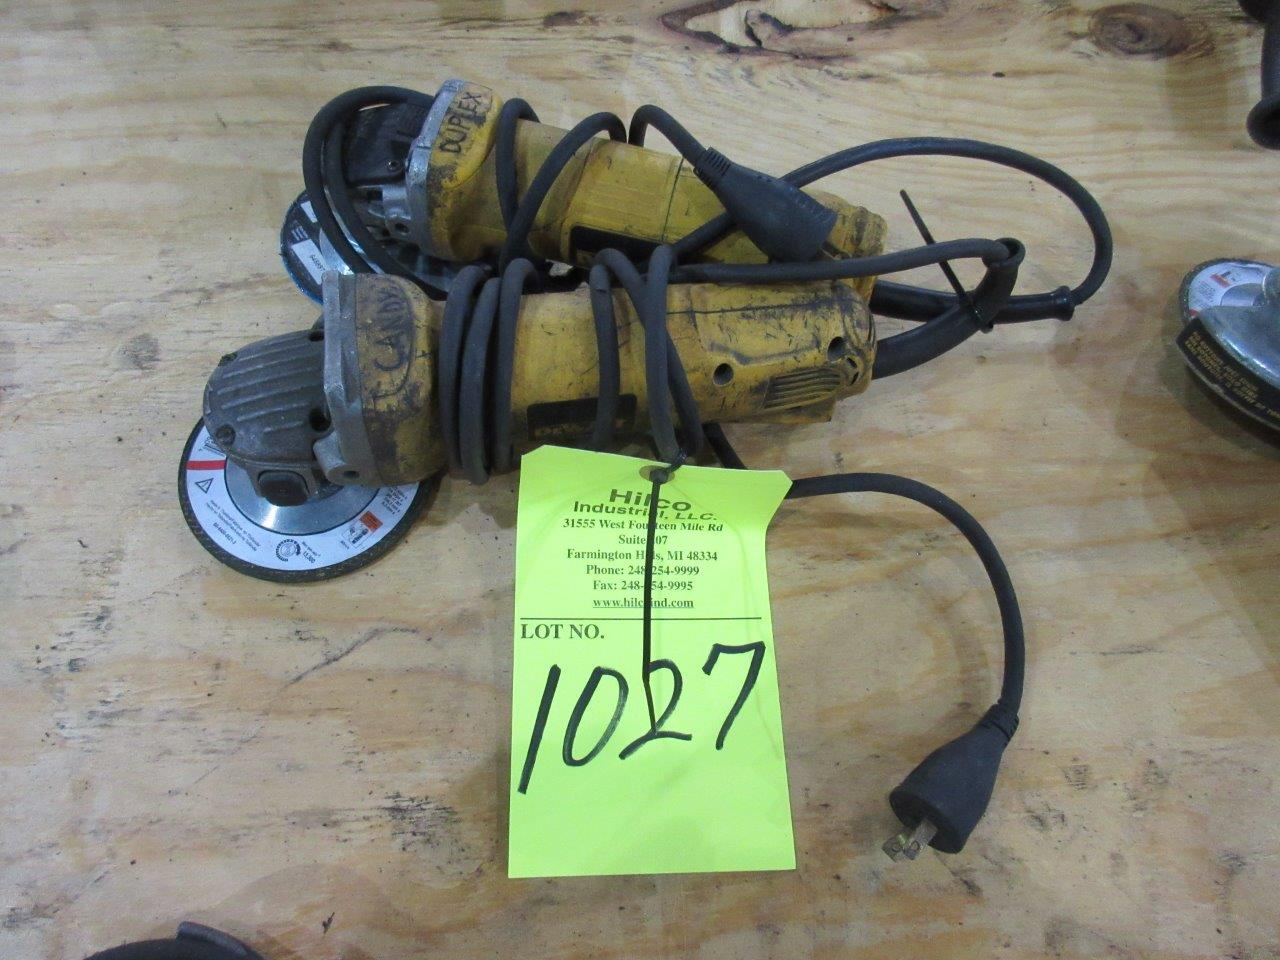 "Lot 1027 - DeWalt Model D28402 4 1/2"" Angle Grinders"